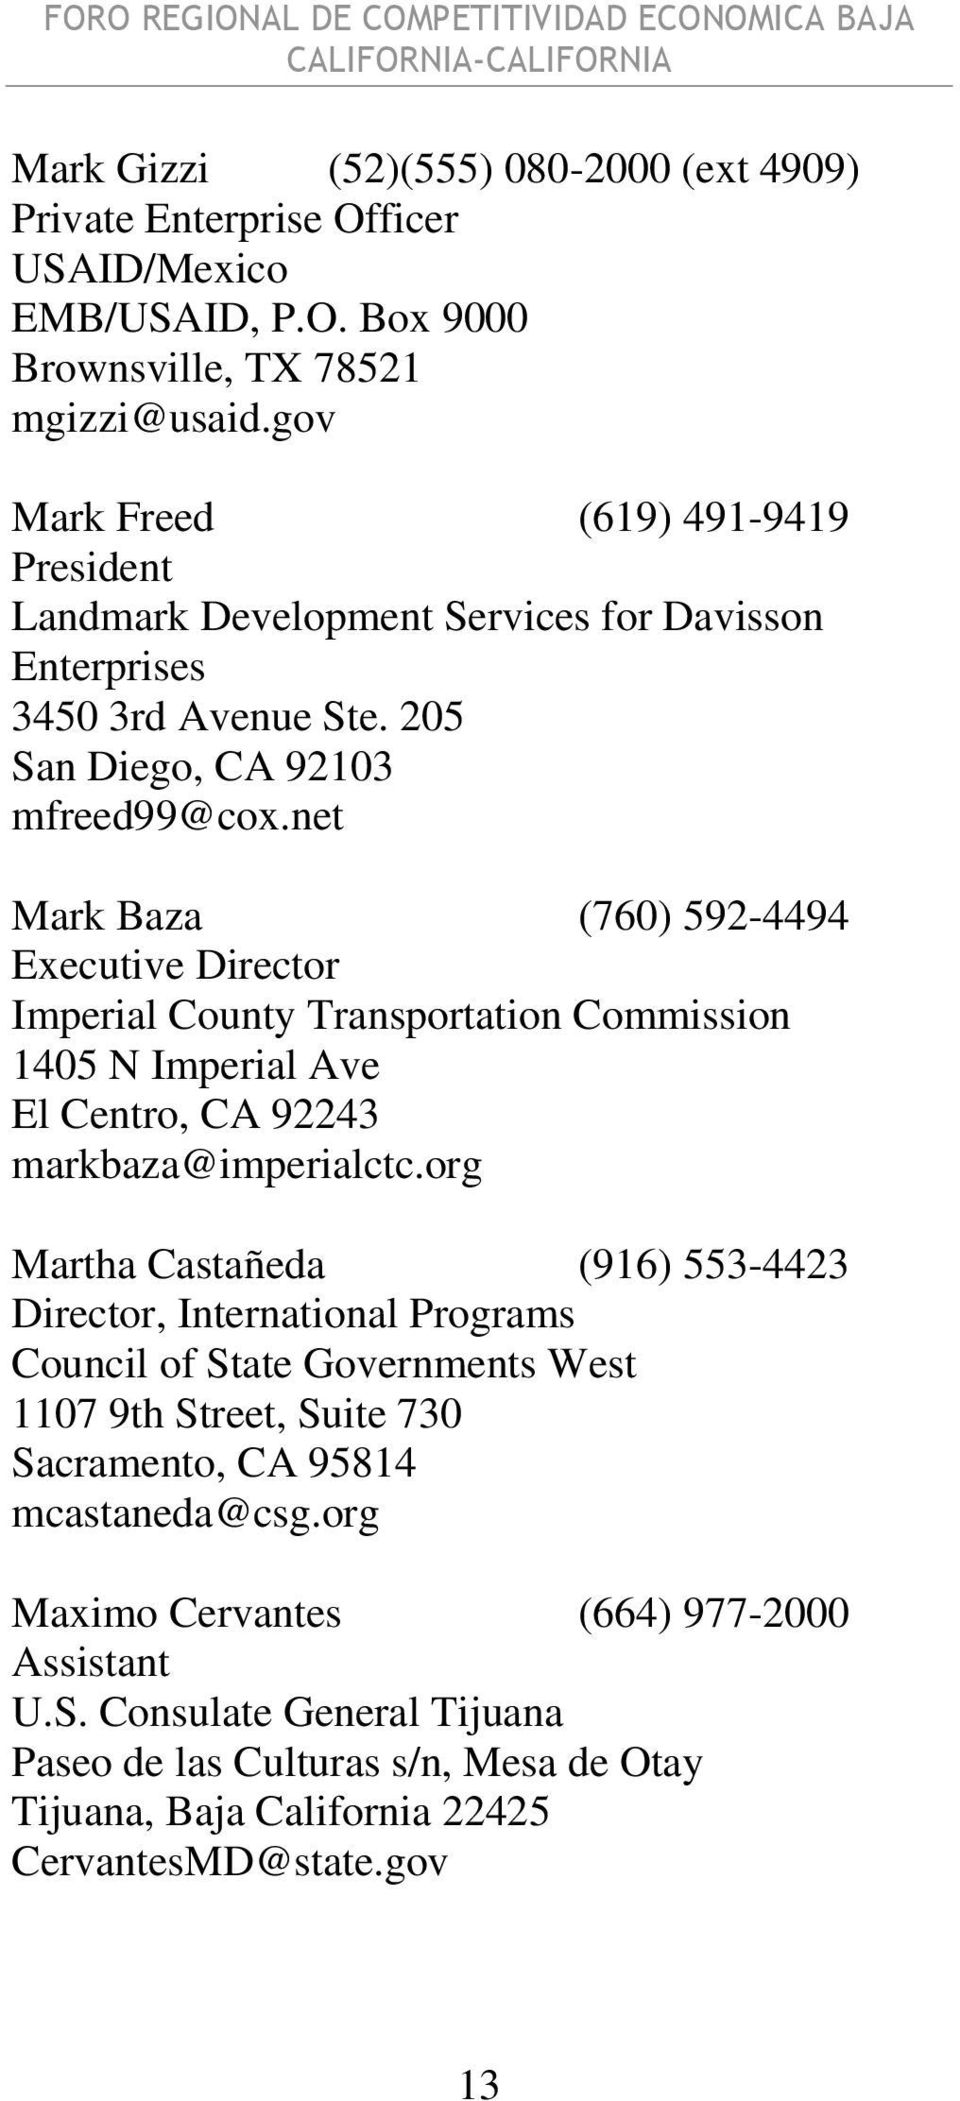 net Mark Baza (760) 592-4494 Imperial County Transportation Commission 1405 N Imperial Ave El Centro, CA 92243 markbaza@imperialctc.